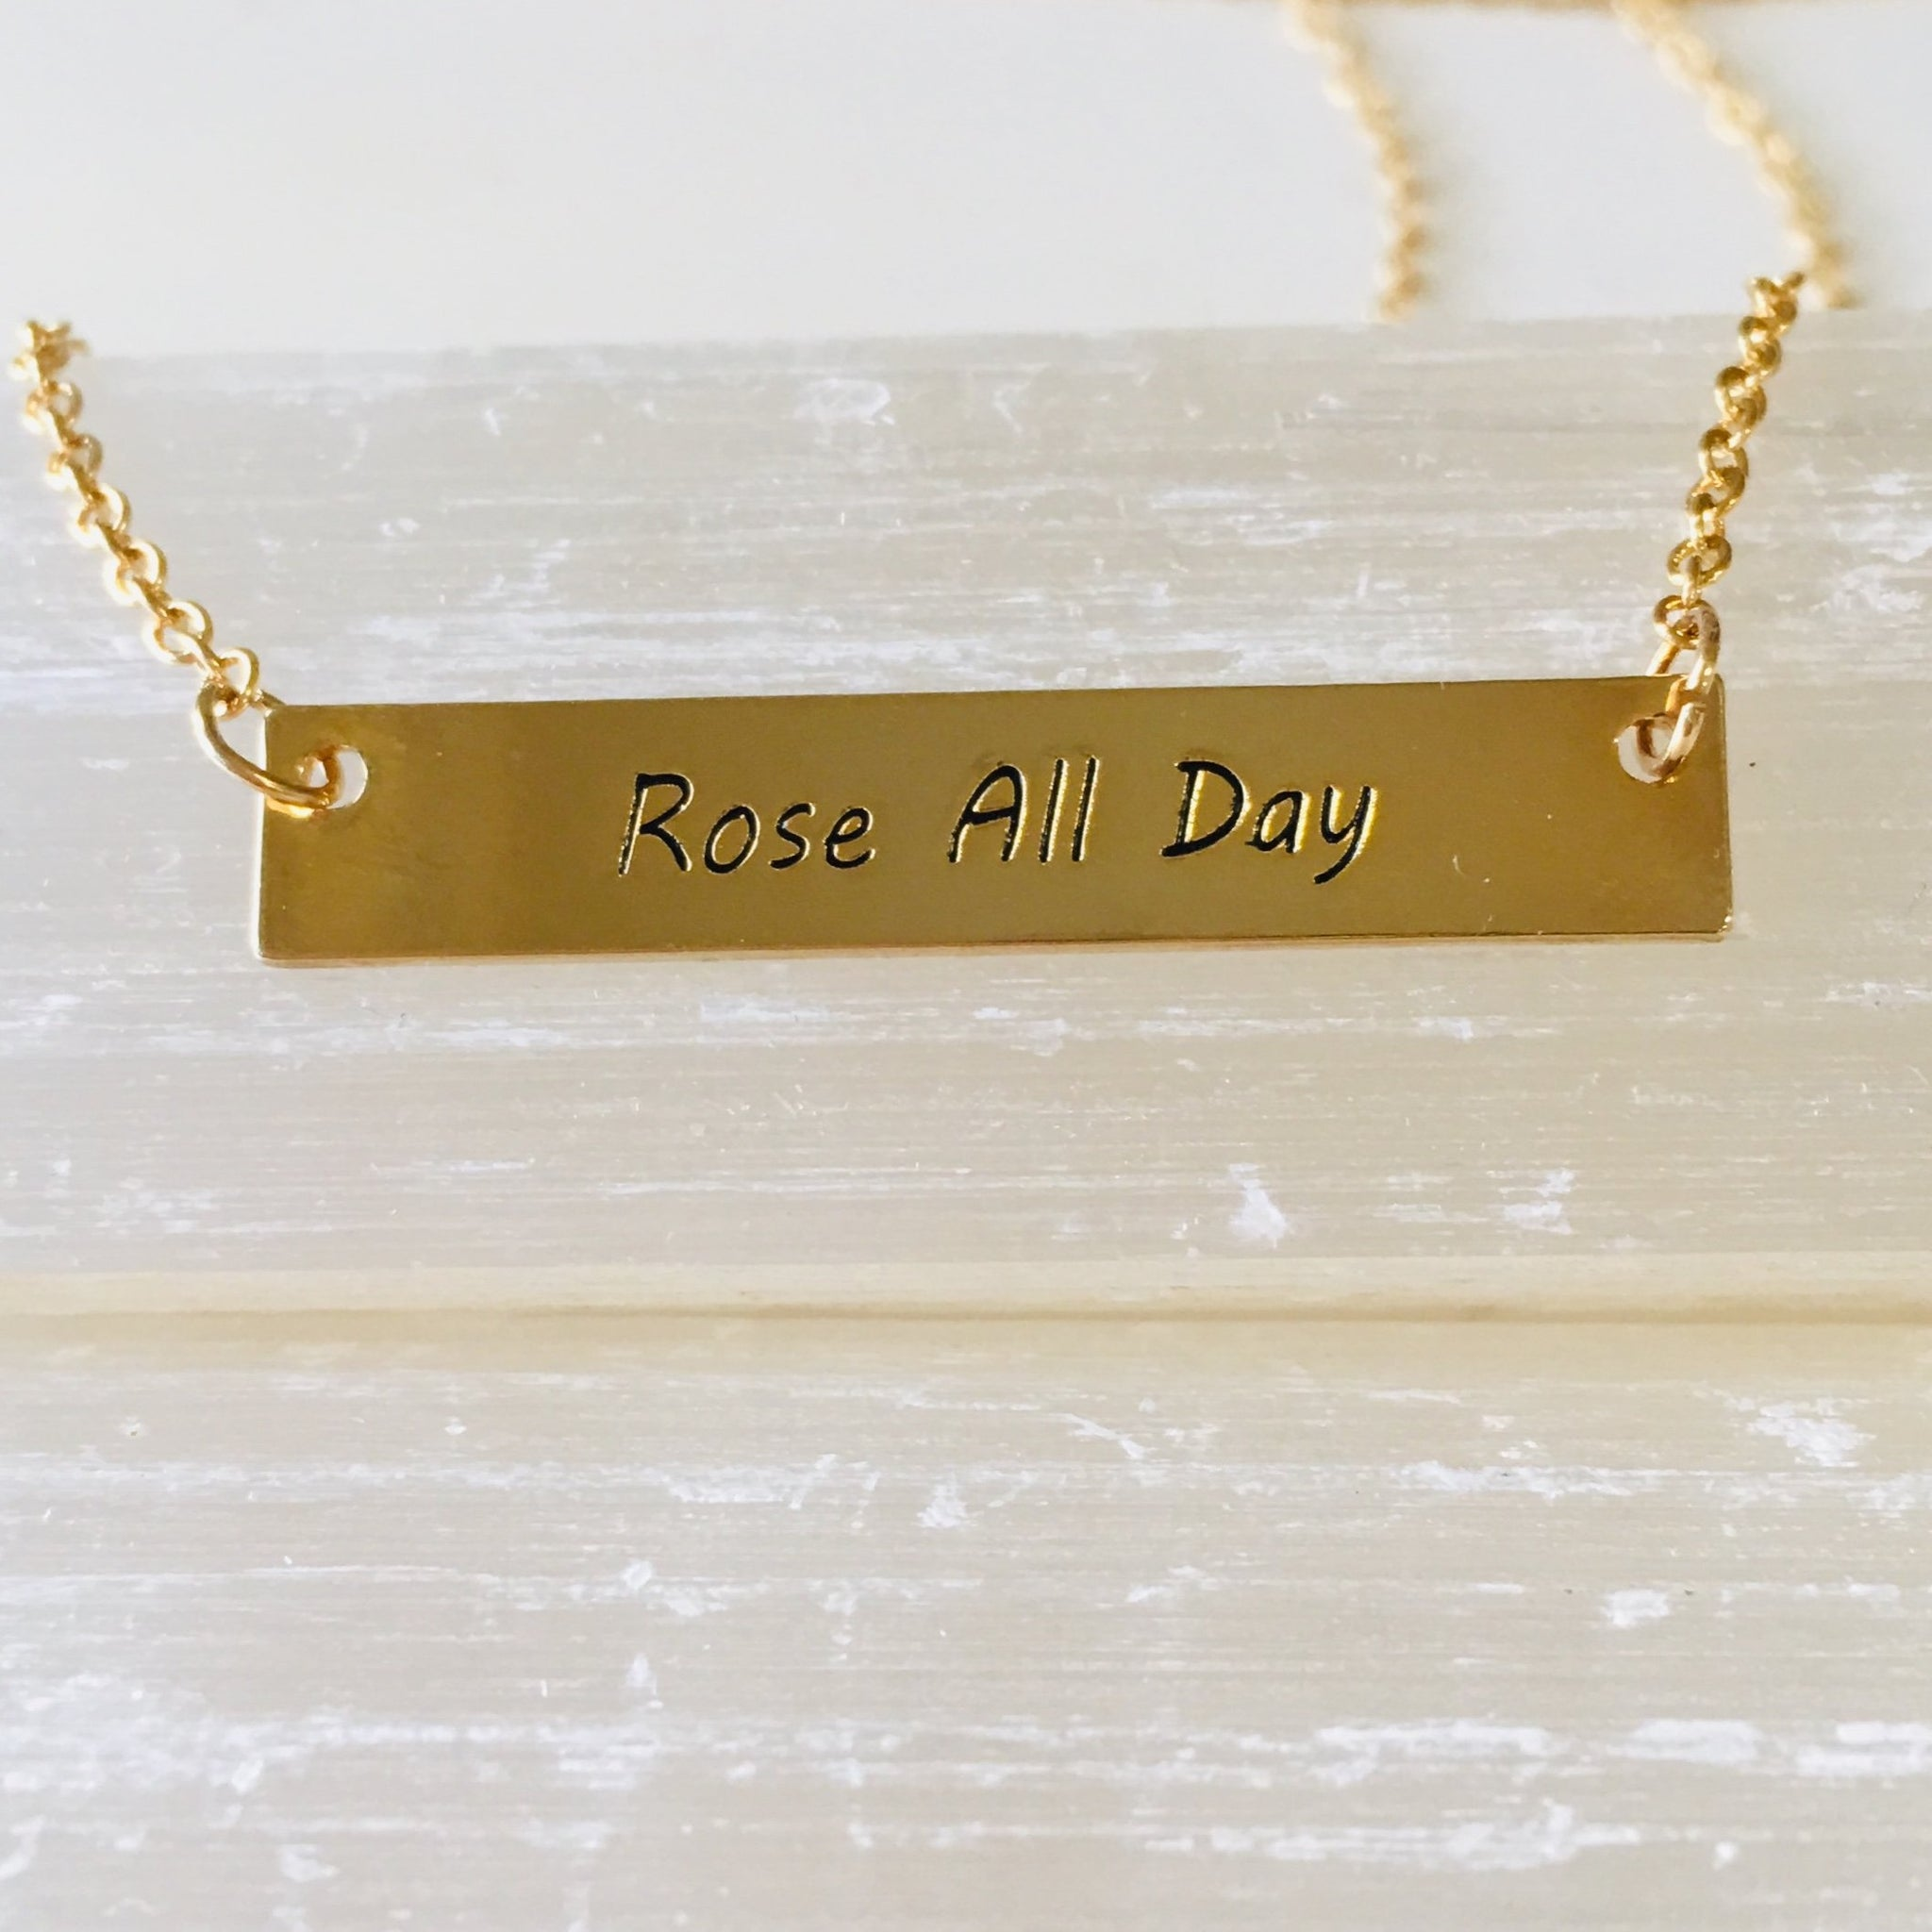 ROSE ALL DAY BAR NECKLACE